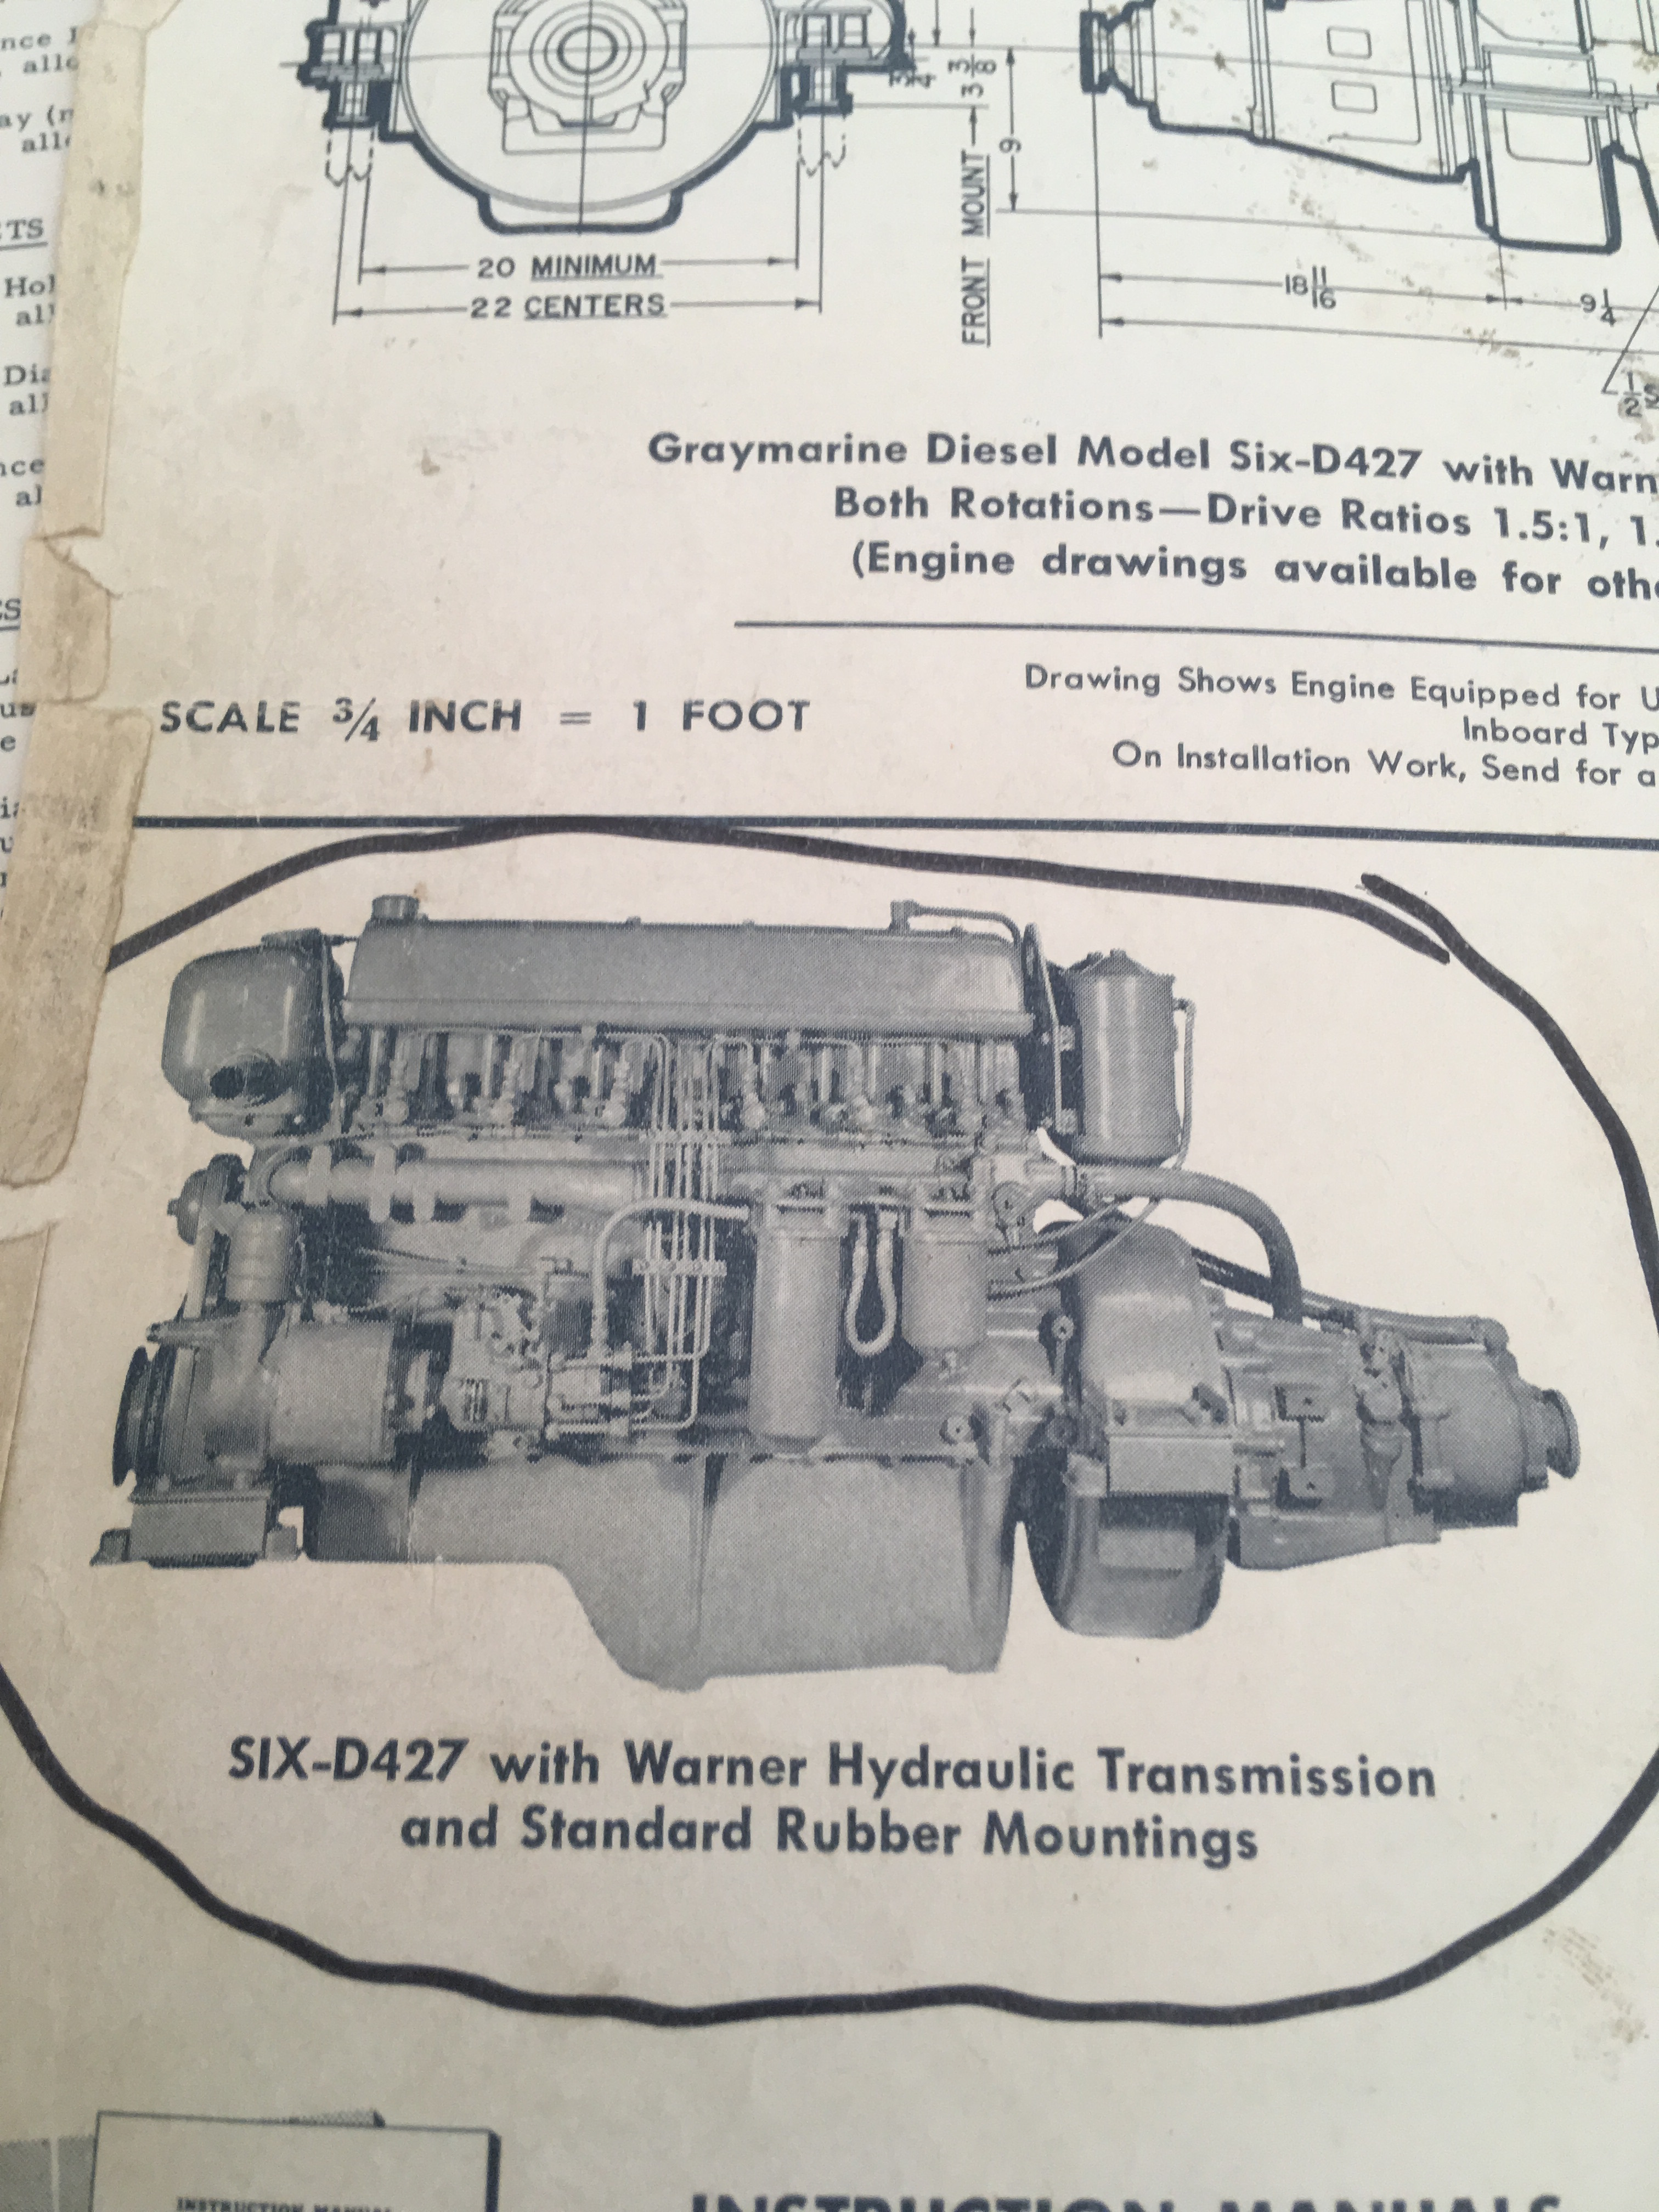 thetis engines 2 x graymarine 4 cycle 6 cyl installed 1960 gray marine engine gaskets [ 3024 x 4032 Pixel ]